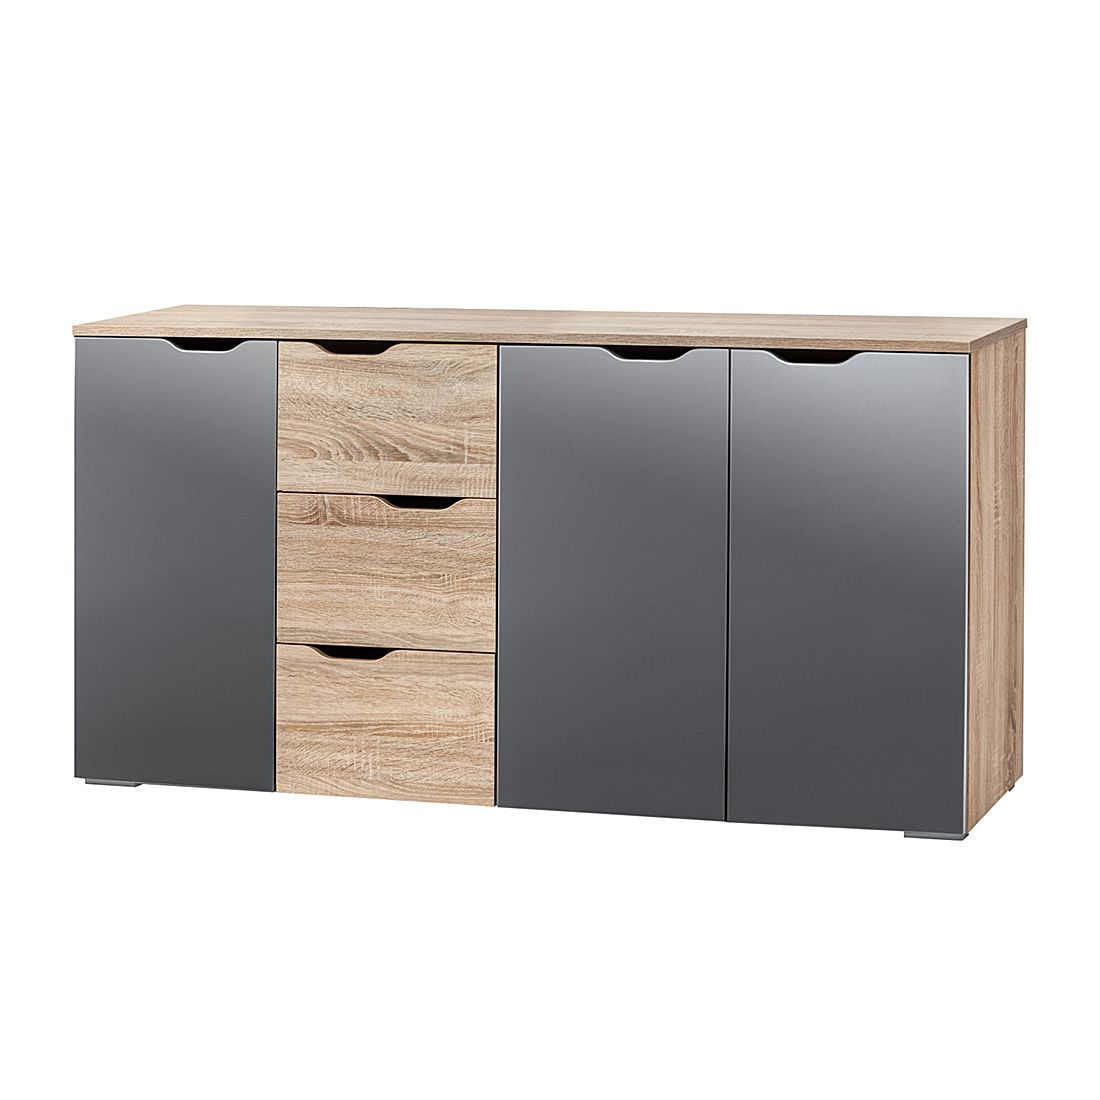 kommode lia iii sonoma eiche dekor grau hochglanz. Black Bedroom Furniture Sets. Home Design Ideas